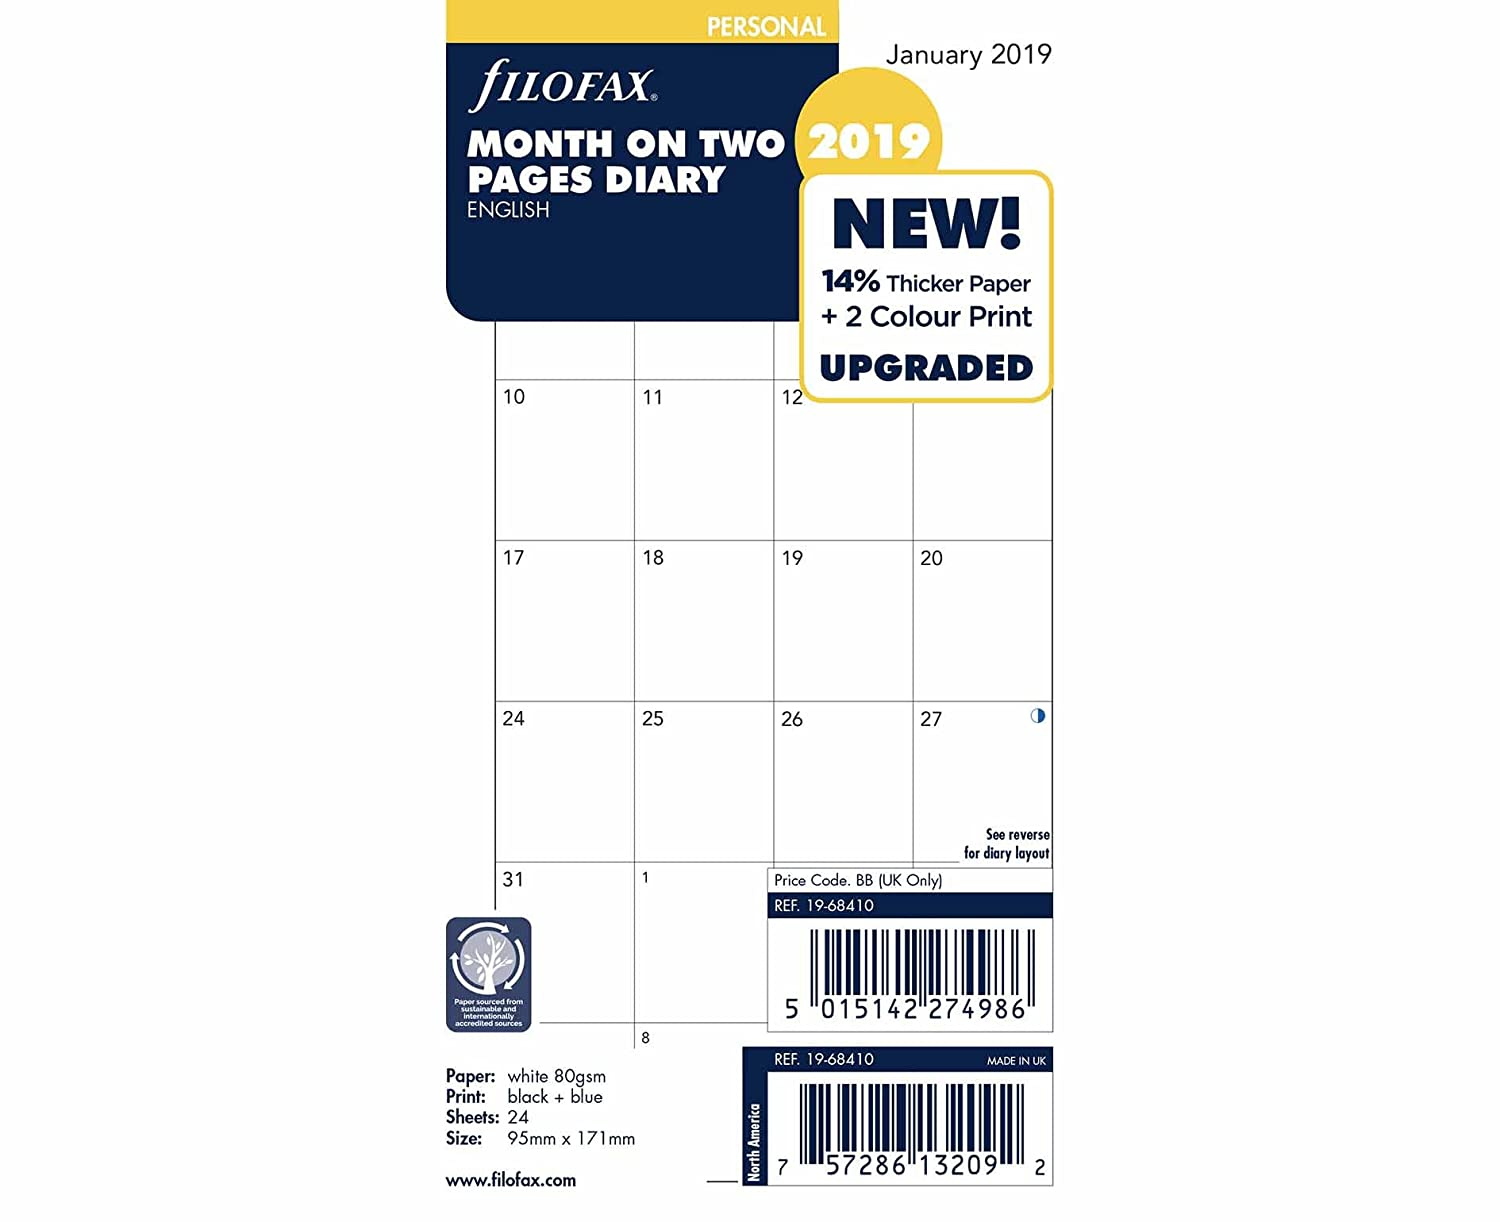 Filofax Diary Insert Month on 2 Pages Untabbed Personal 2019 19-68410